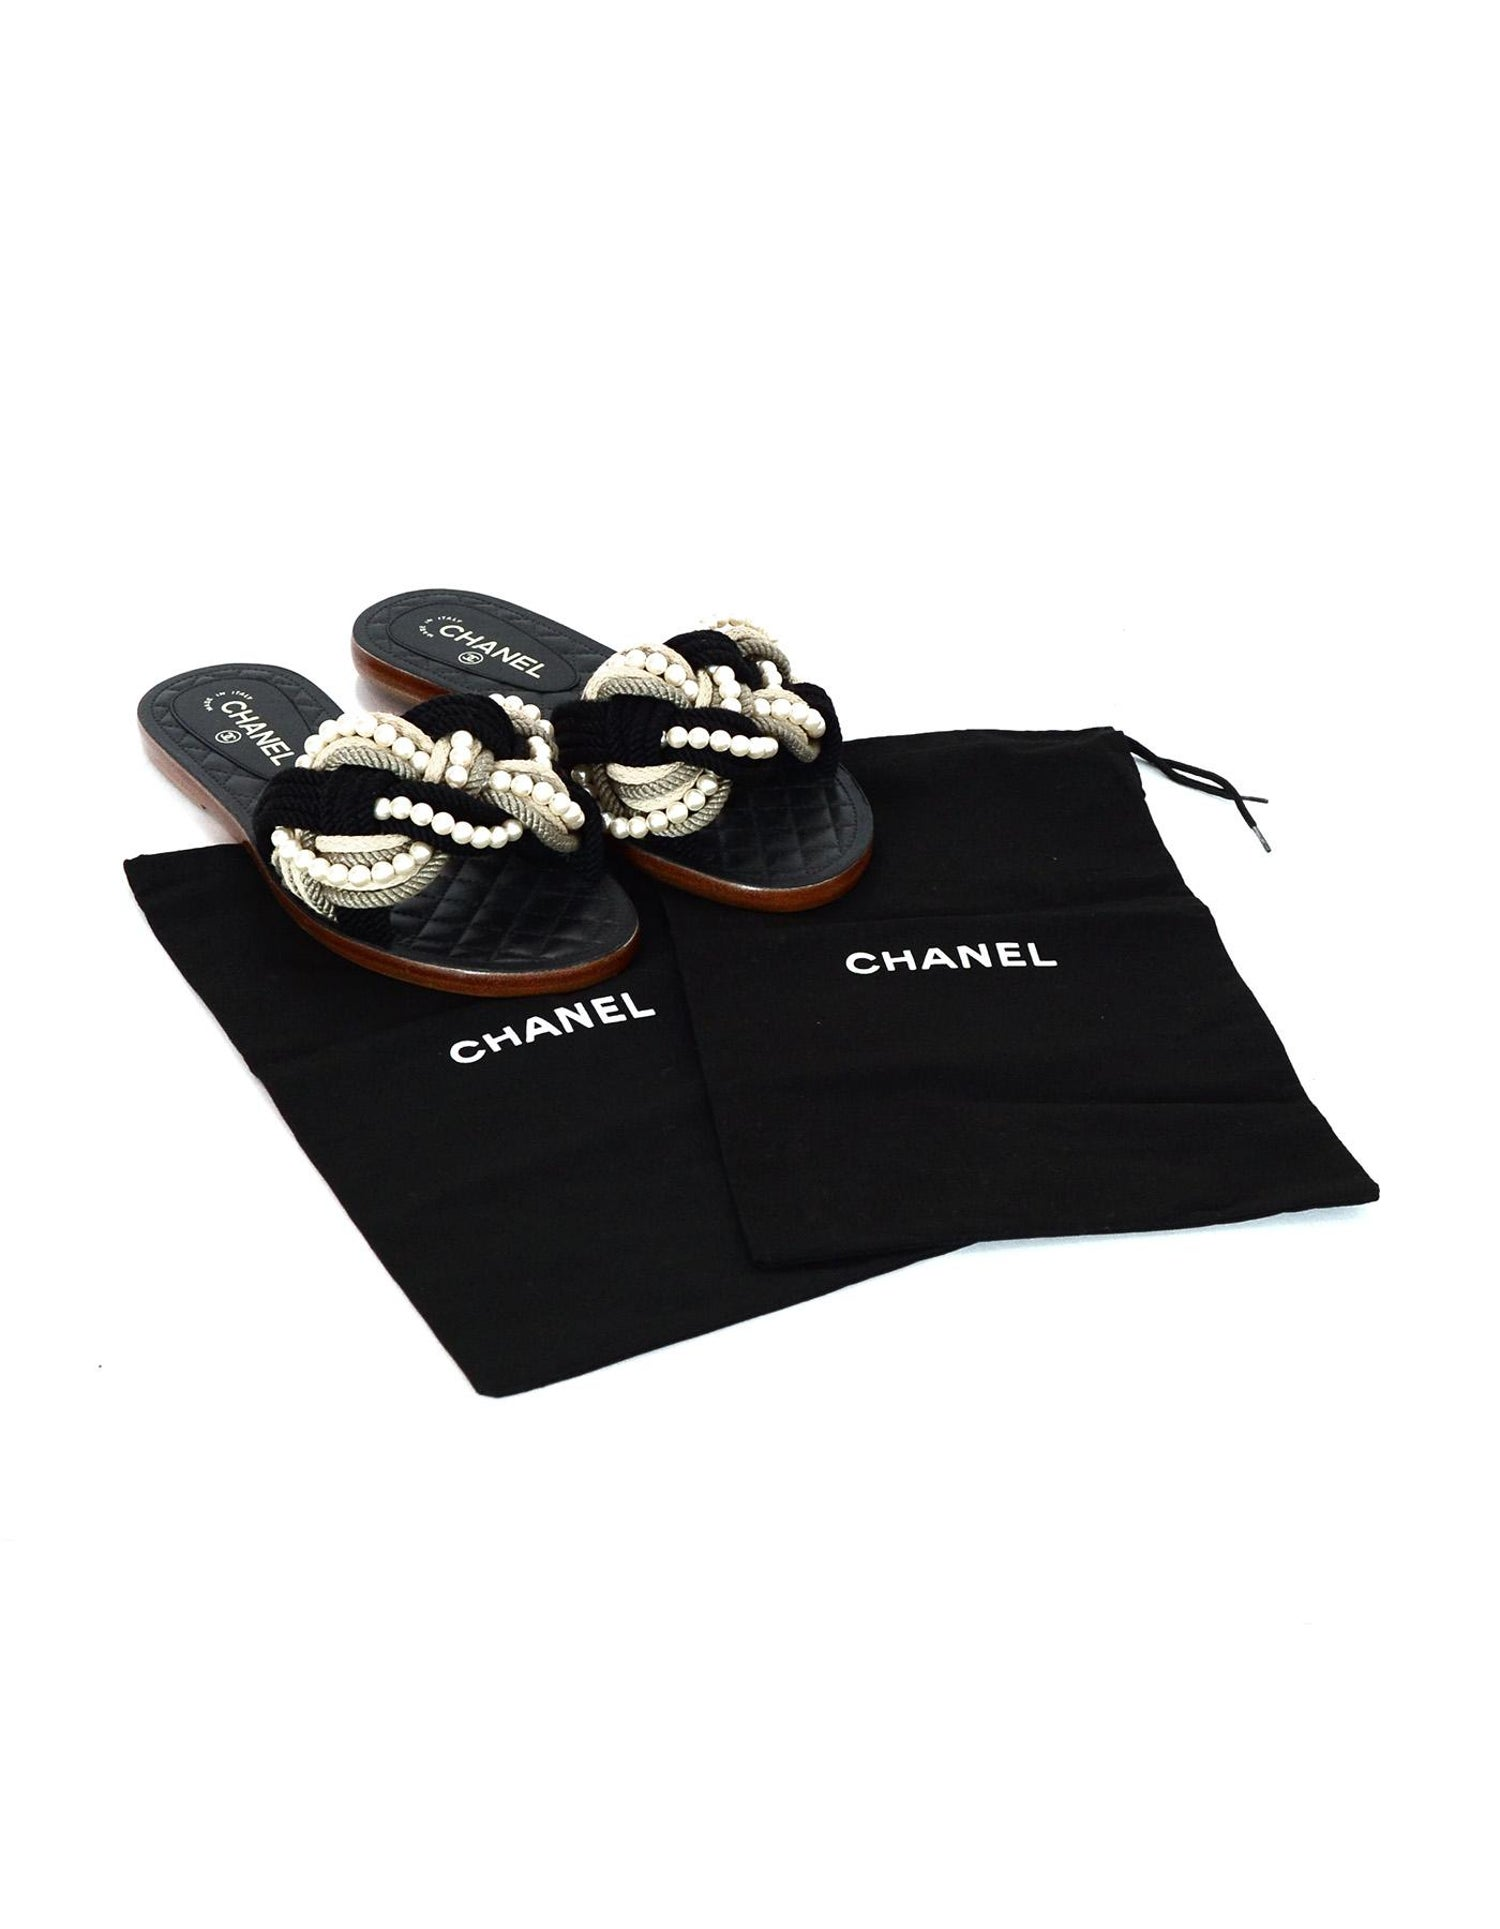 65f3f7830d1c Chanel  17 Paris Cuba Black Beige Braided Rope and Pearl Slide Sandals Sz  40C Wide For Sale at 1stdibs